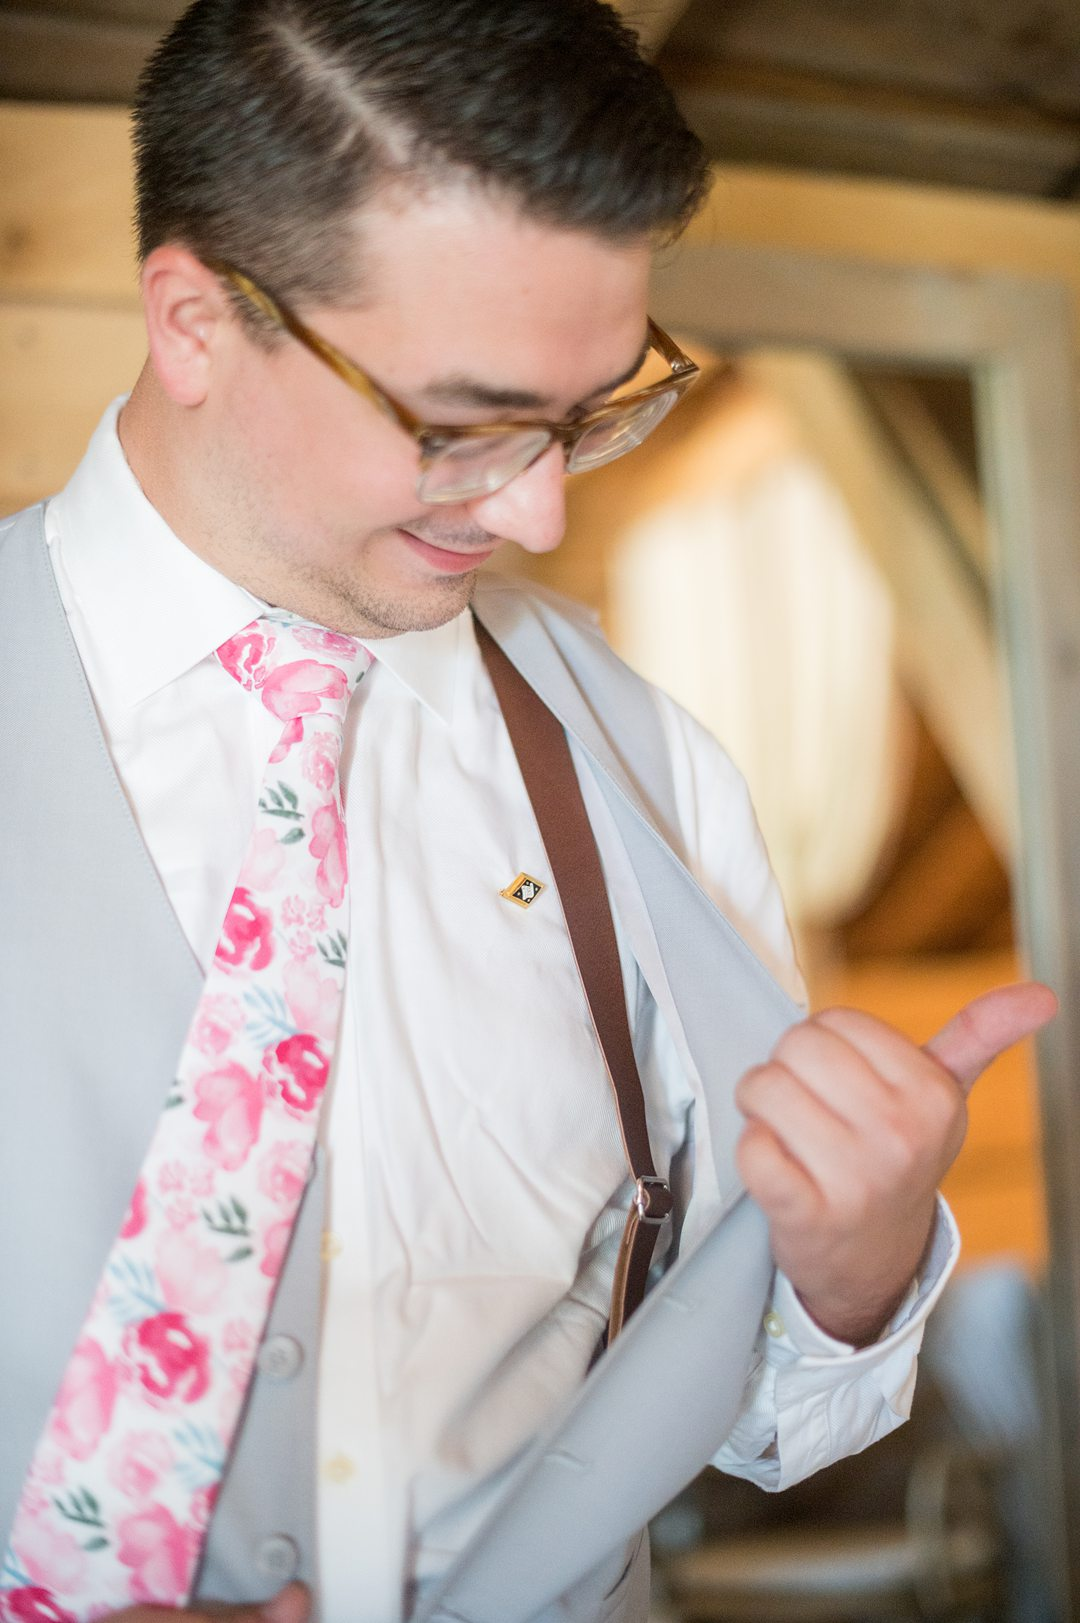 Groom in a grey suit with a pink floral tie and pocket square, and brown leather suspenders, for a small wedding in Charlottesville, VA during COVID. Photos by Mikkel Paige Photography.